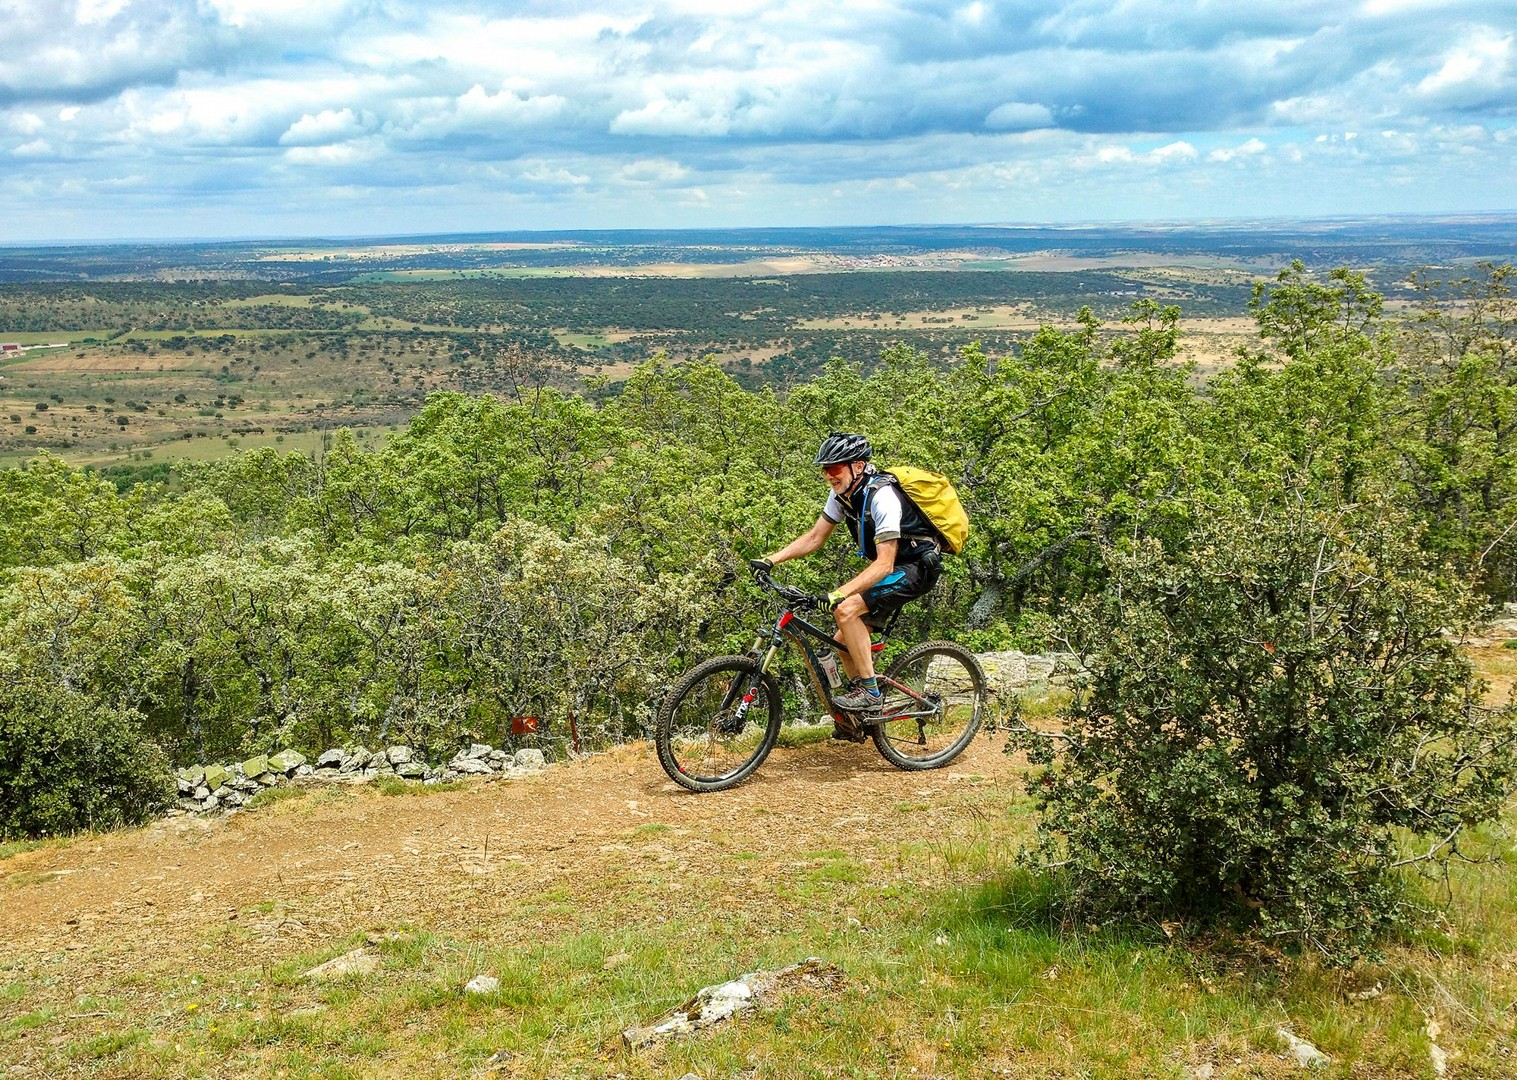 saddle-skedaddle-spanish-mountain-bike-holidays-guided-trip.jpg - Spain - Ruta de la Plata - Guided Mountain Bike Holiday - Mountain Biking